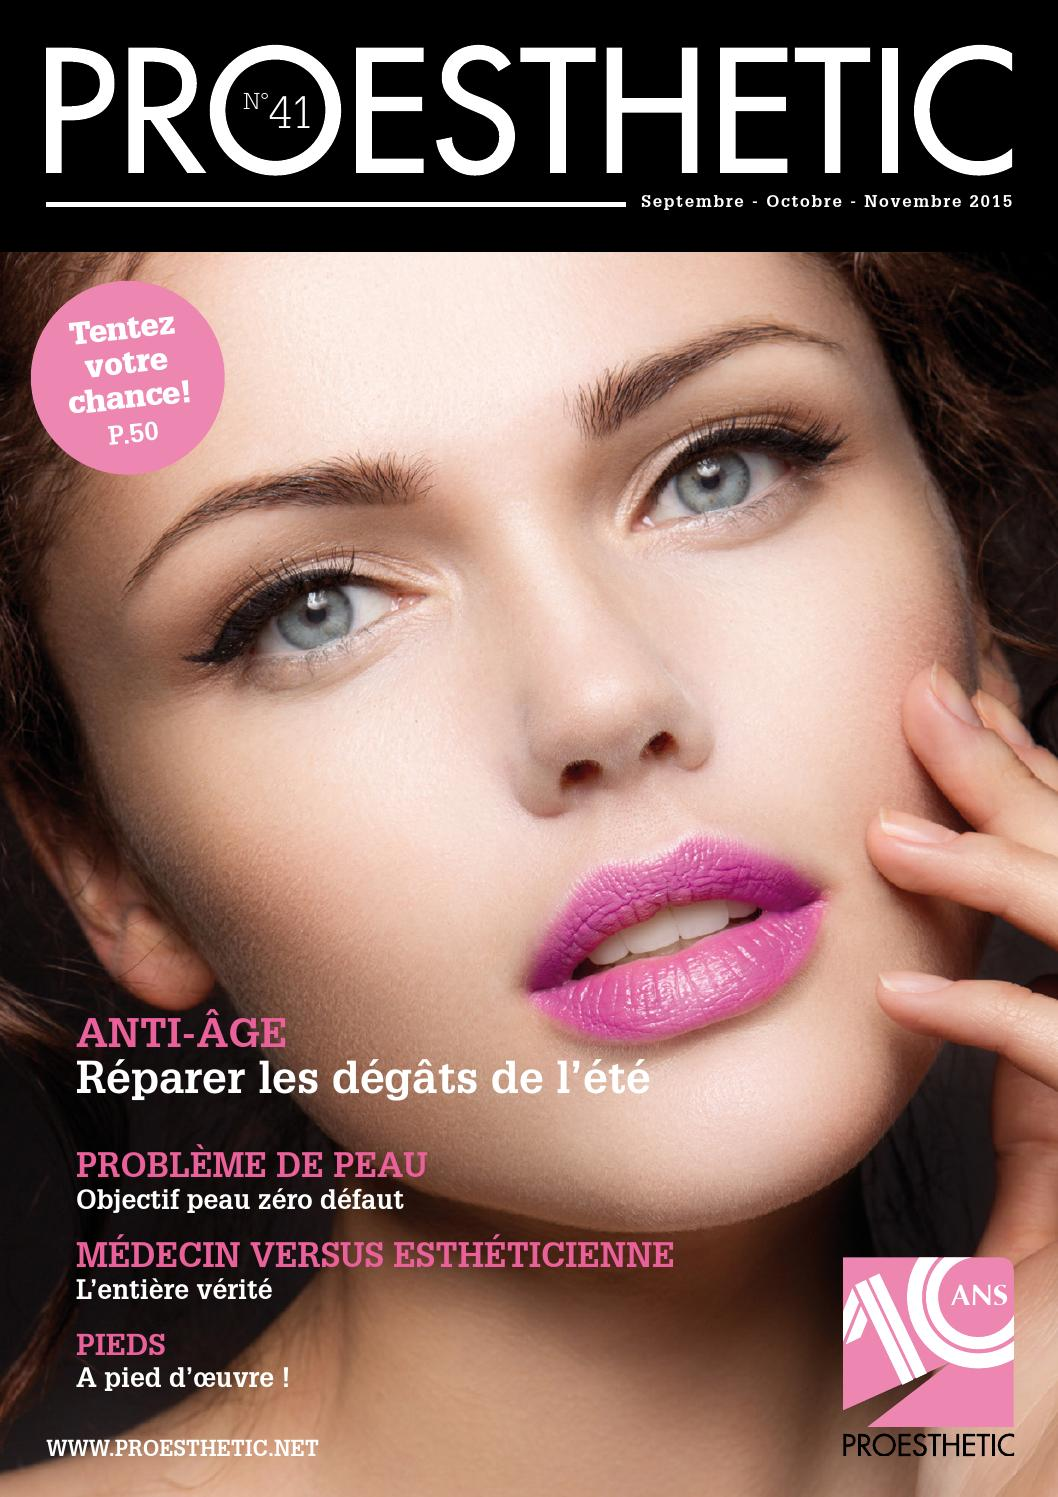 d635d1a36c8b PRO Esthetic BEFR n°41 by Eurobest Products - issuu